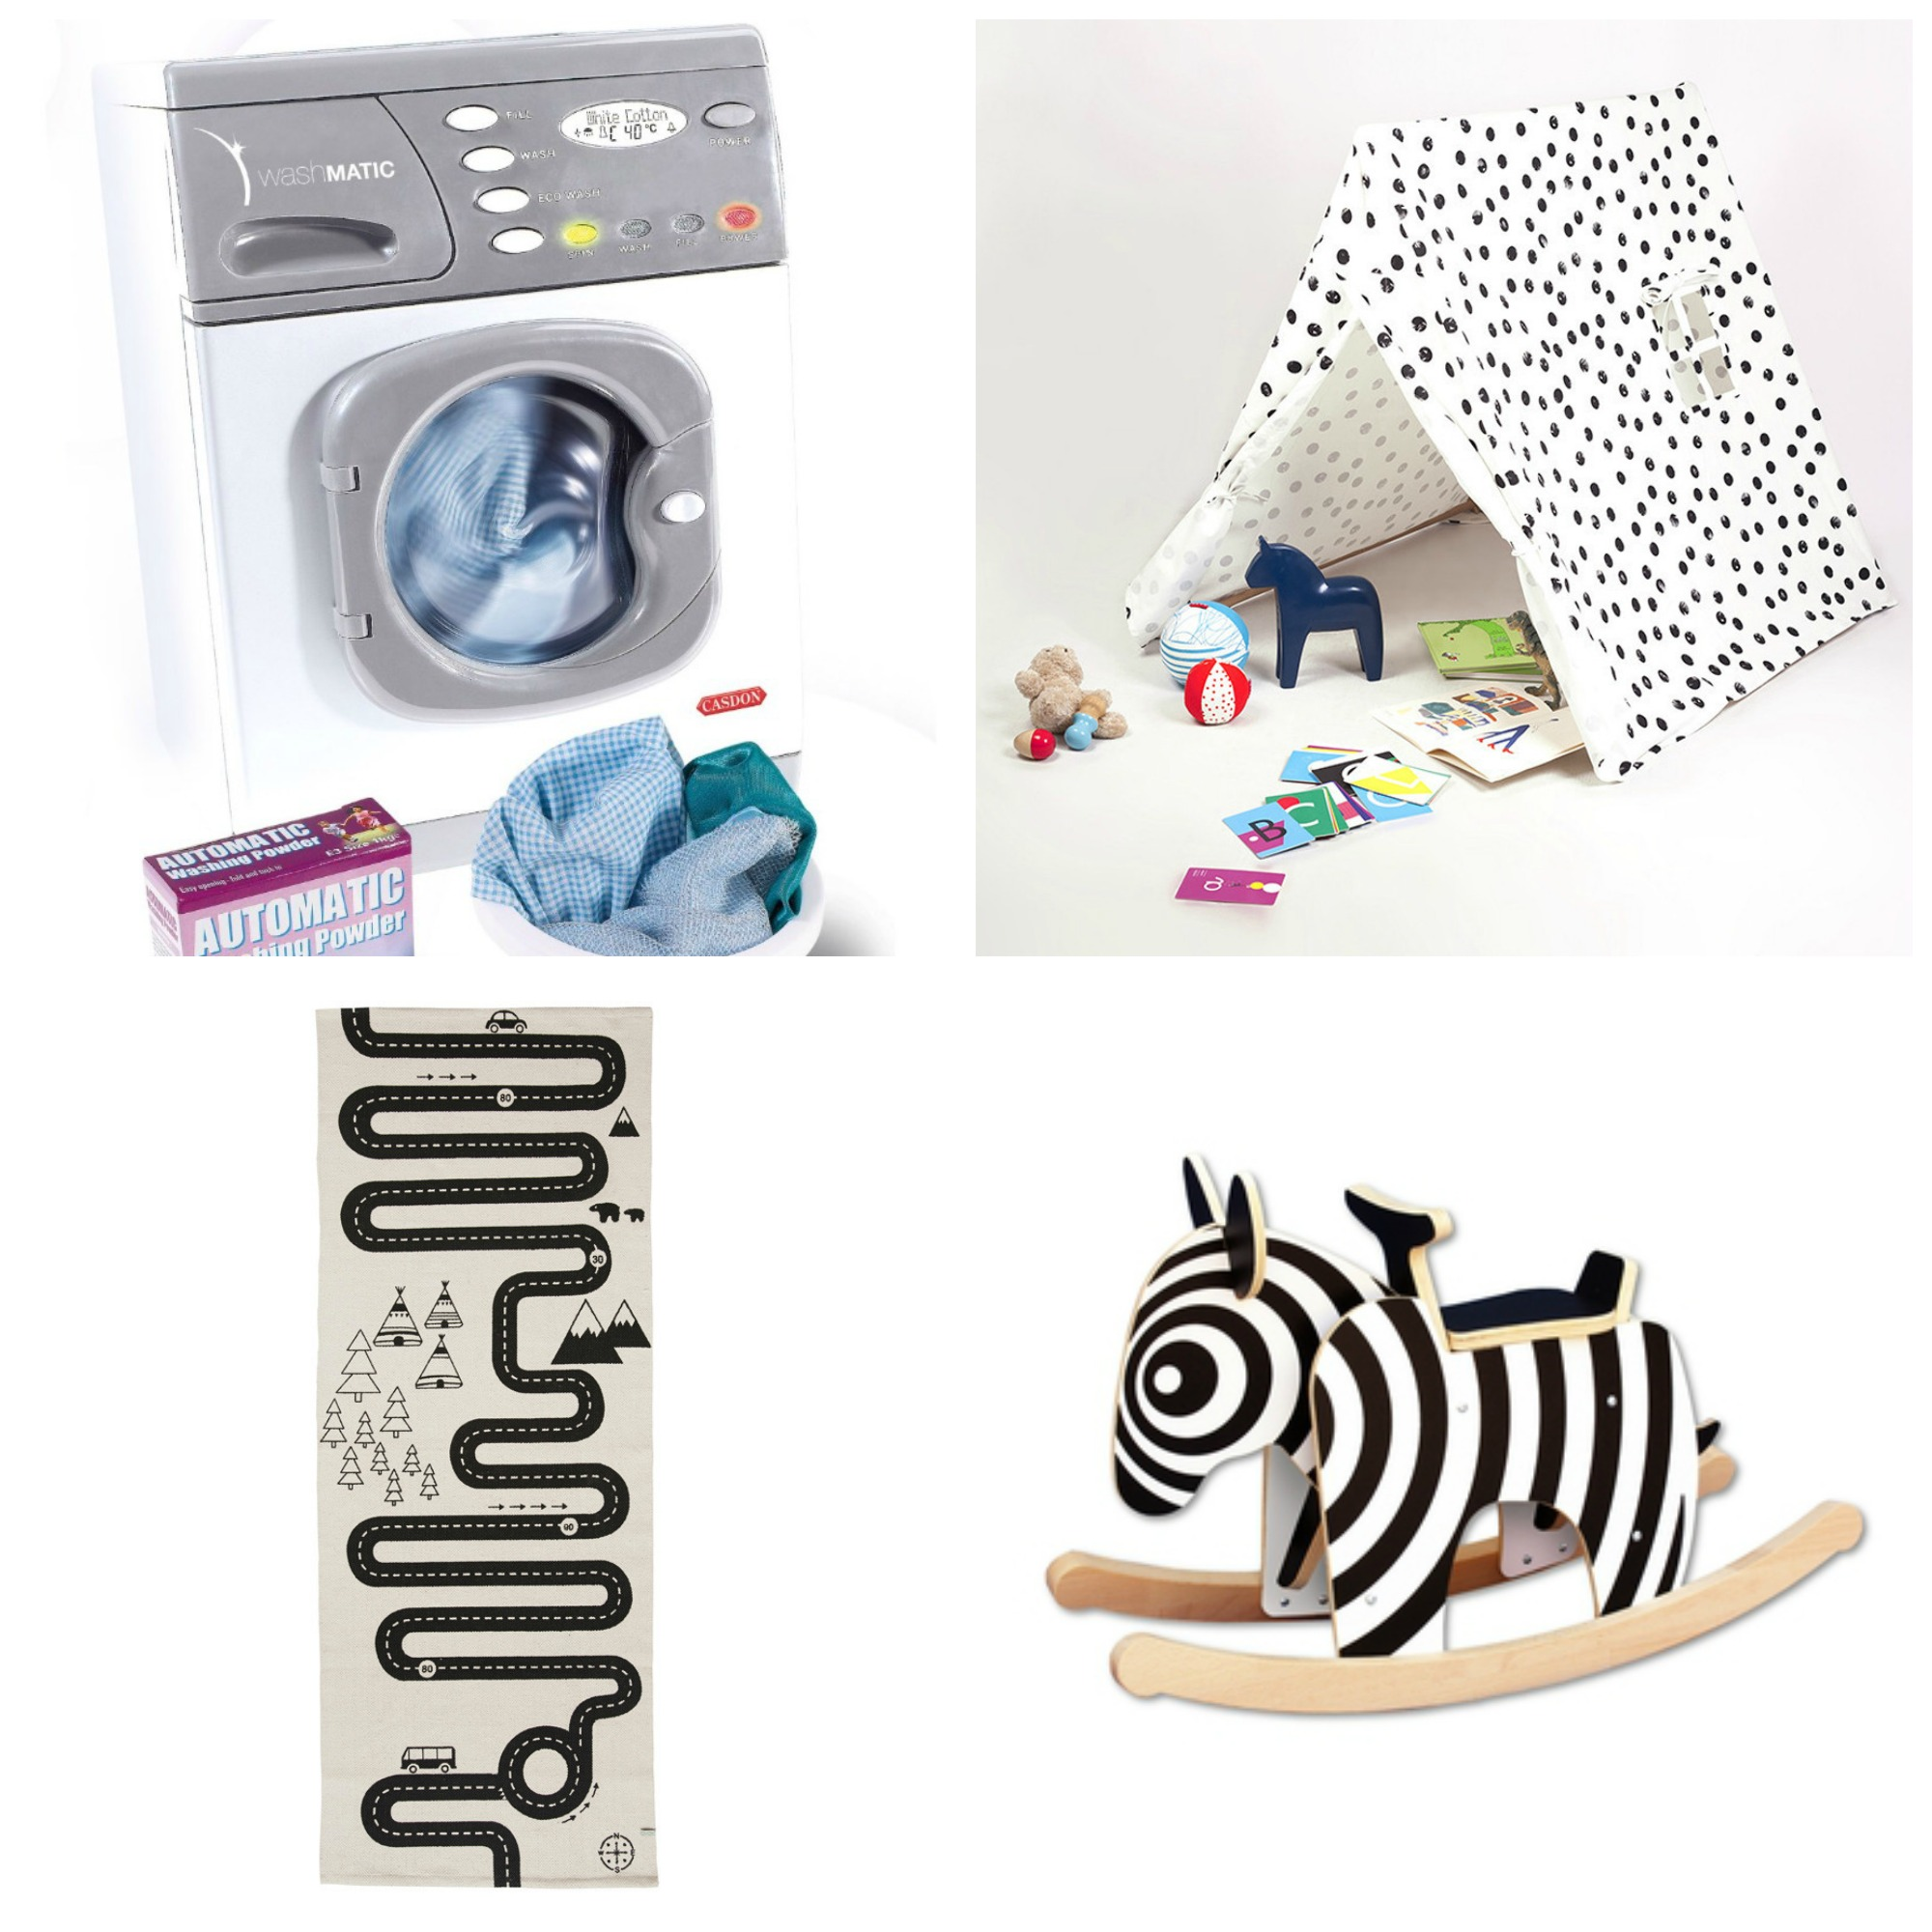 Toddler 2nd Birthday Gift Guide